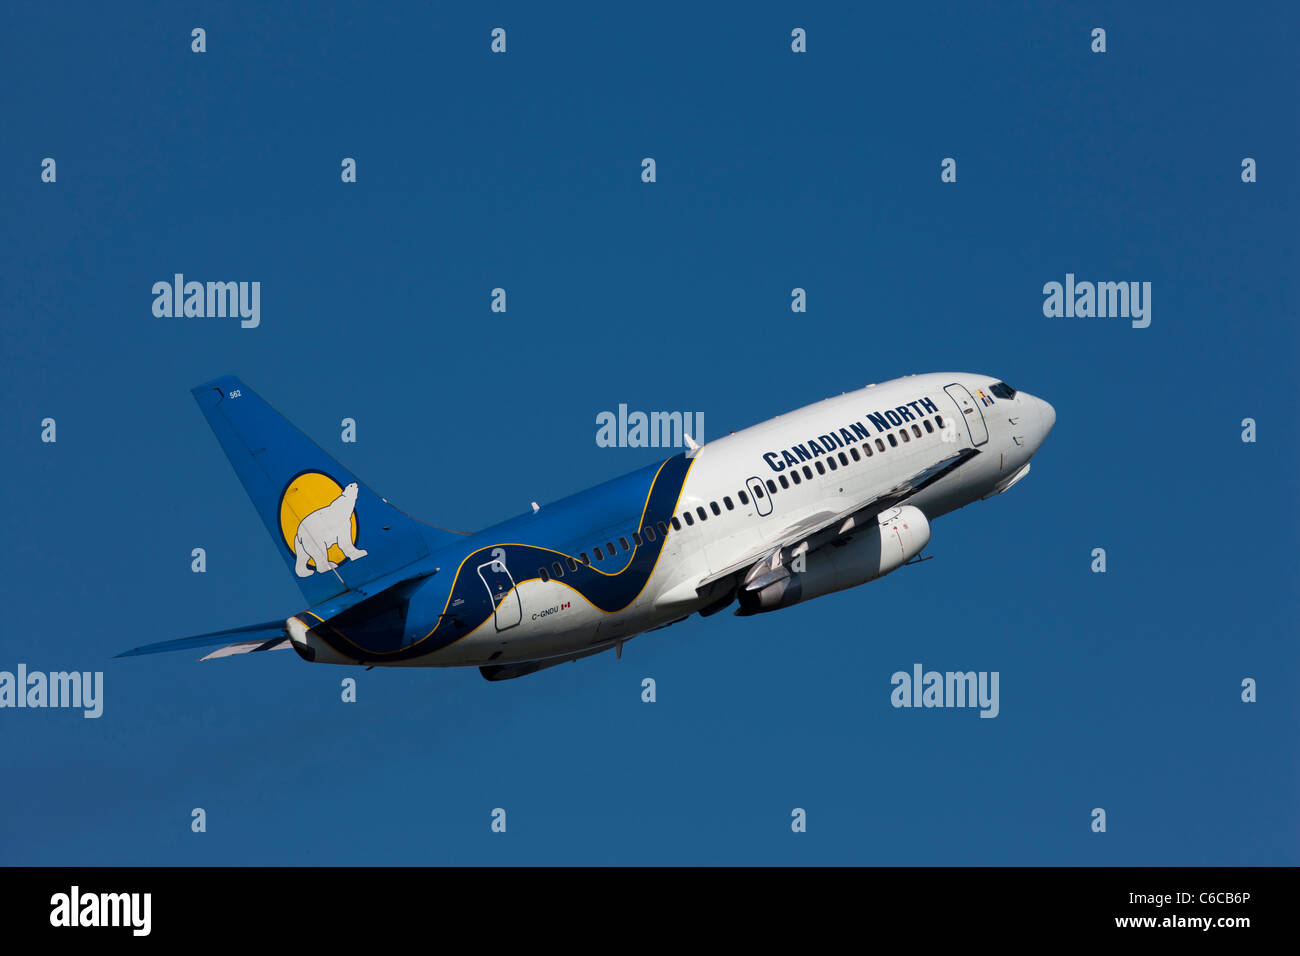 A Canadian North passenger jet aircraft sporting it's polar bear emblem takes off from Yellow Knife airport - Stock Image